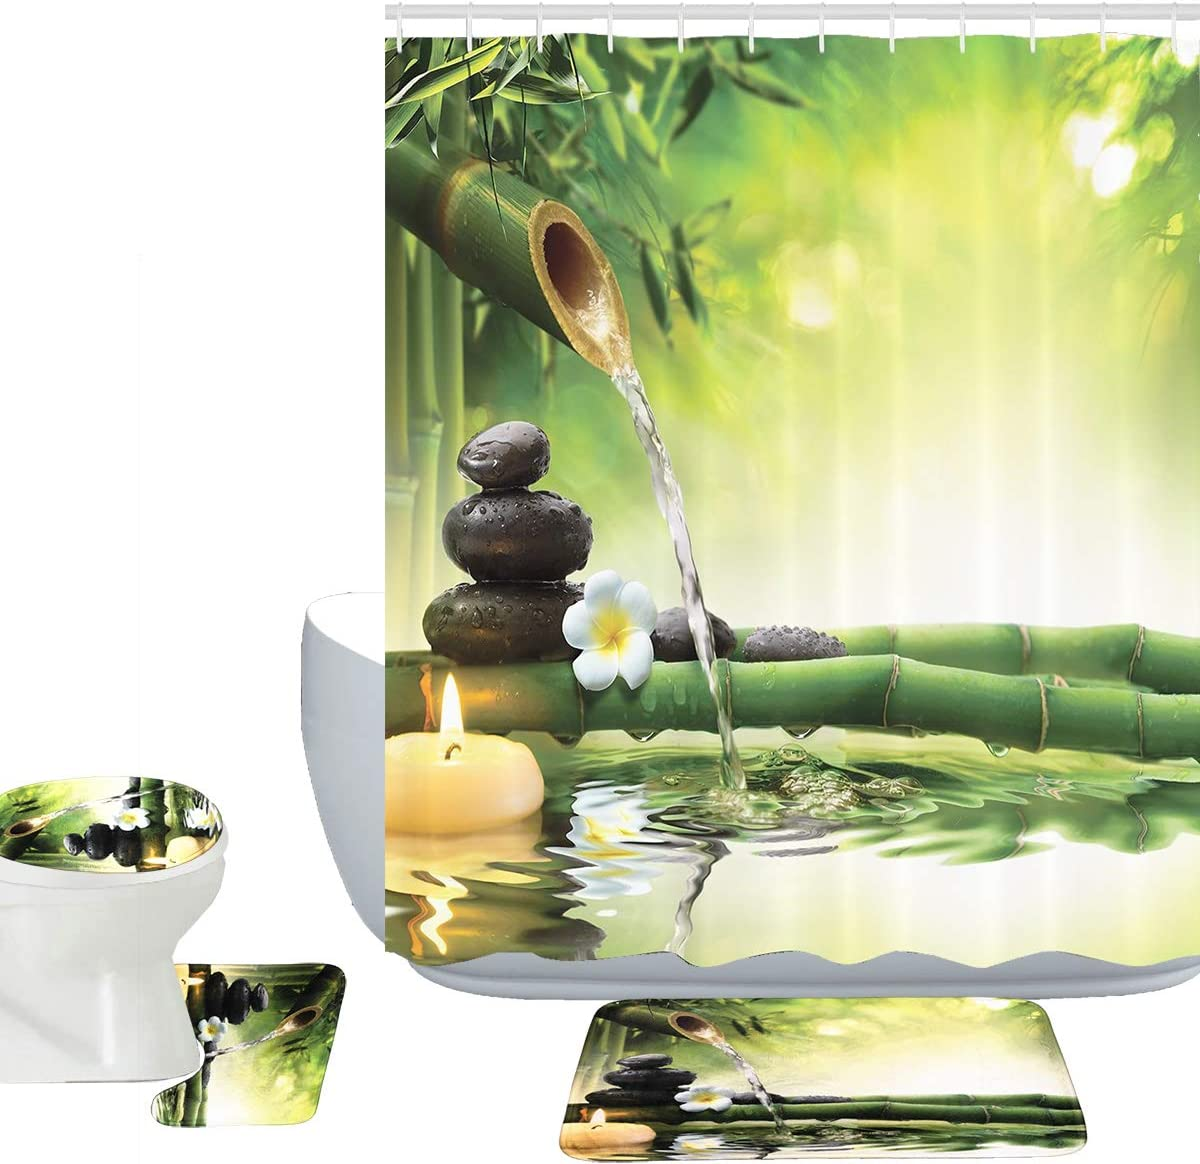 Amagical Zen Garden Theme Decor View Japanese Design 16 Piece Bathroom Mat Set Shower Curtain Set Relaxation Bamboos Candles Bath Mat Contour Mat Toilet Cover Shower Curtain 12 Hooks (Zen Garden)